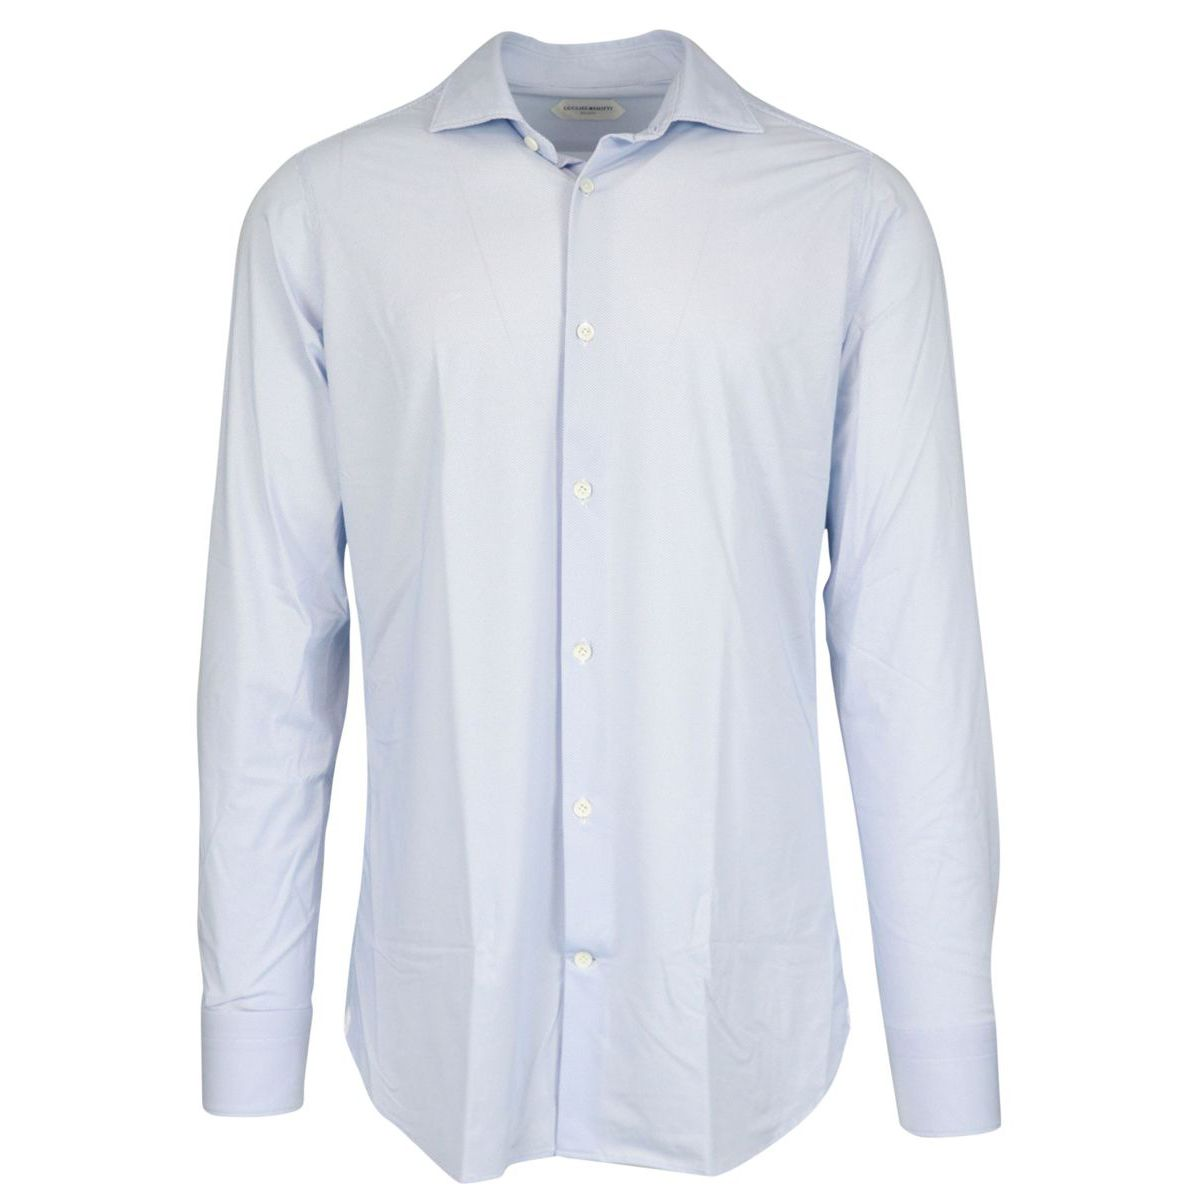 Regular-fit shirt with pleats on the back and French French collar Heavenly Guglielminotti